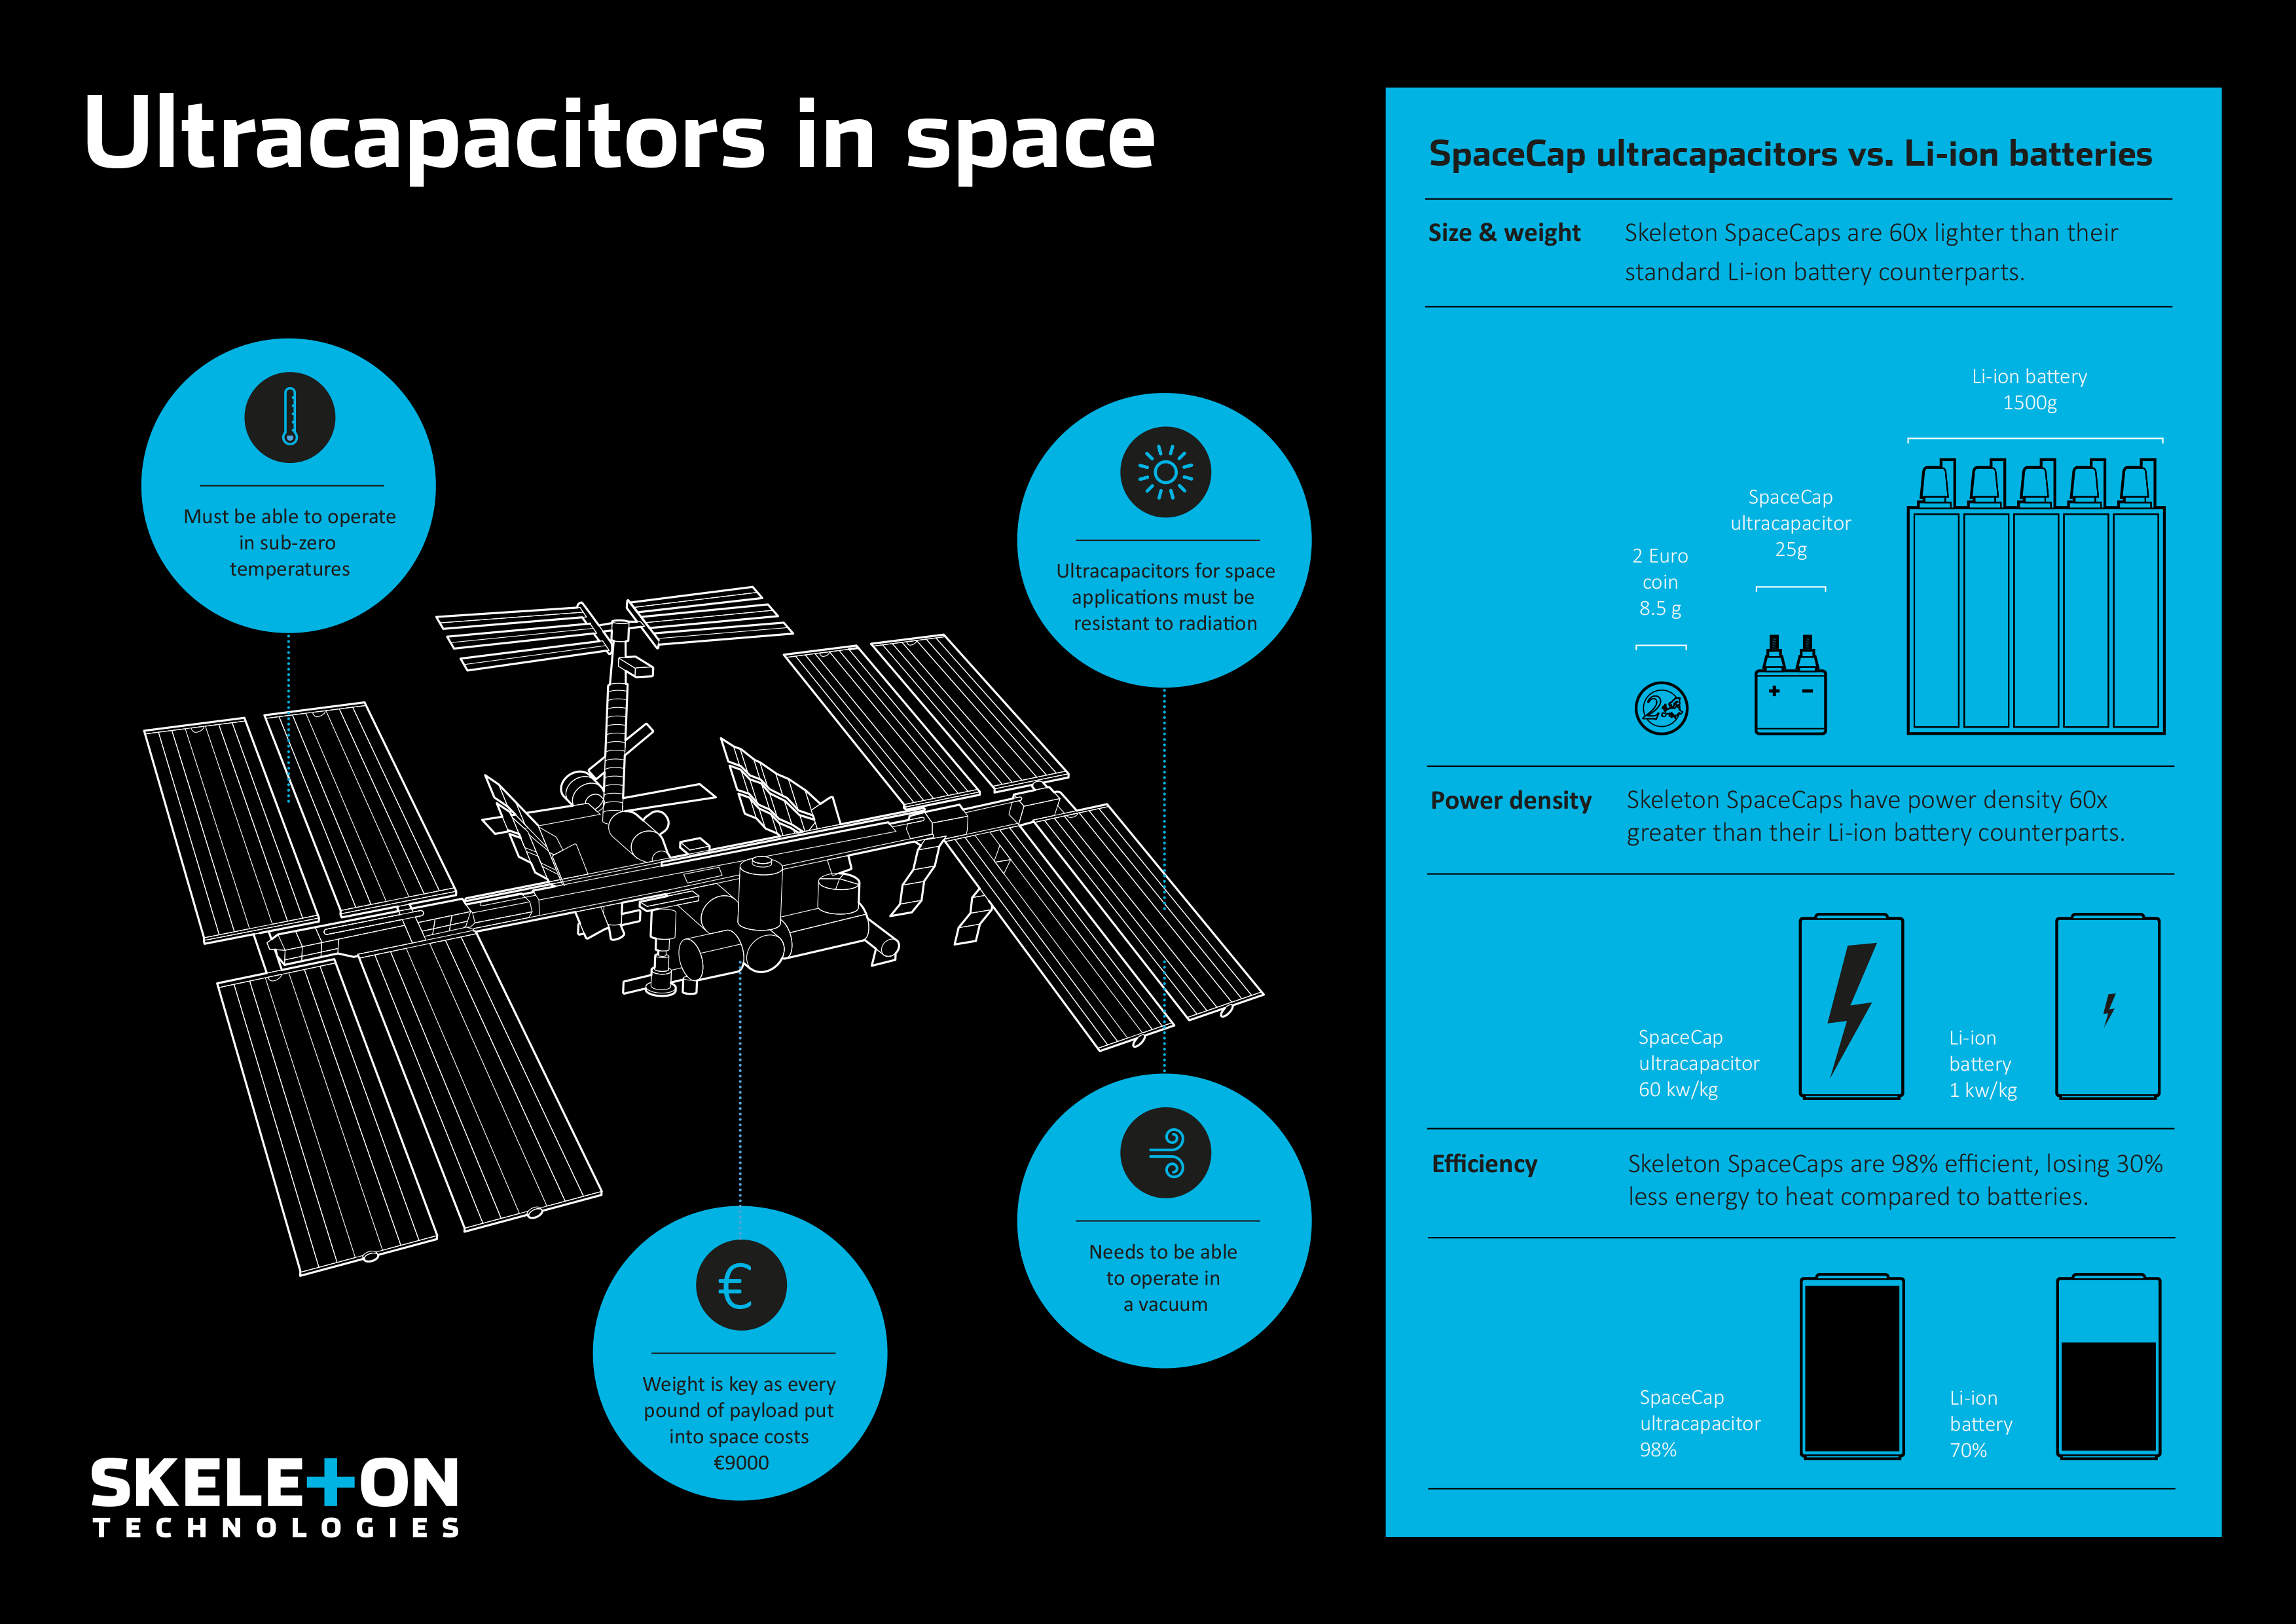 Skeleton Technologies and European Space Agency to send ...